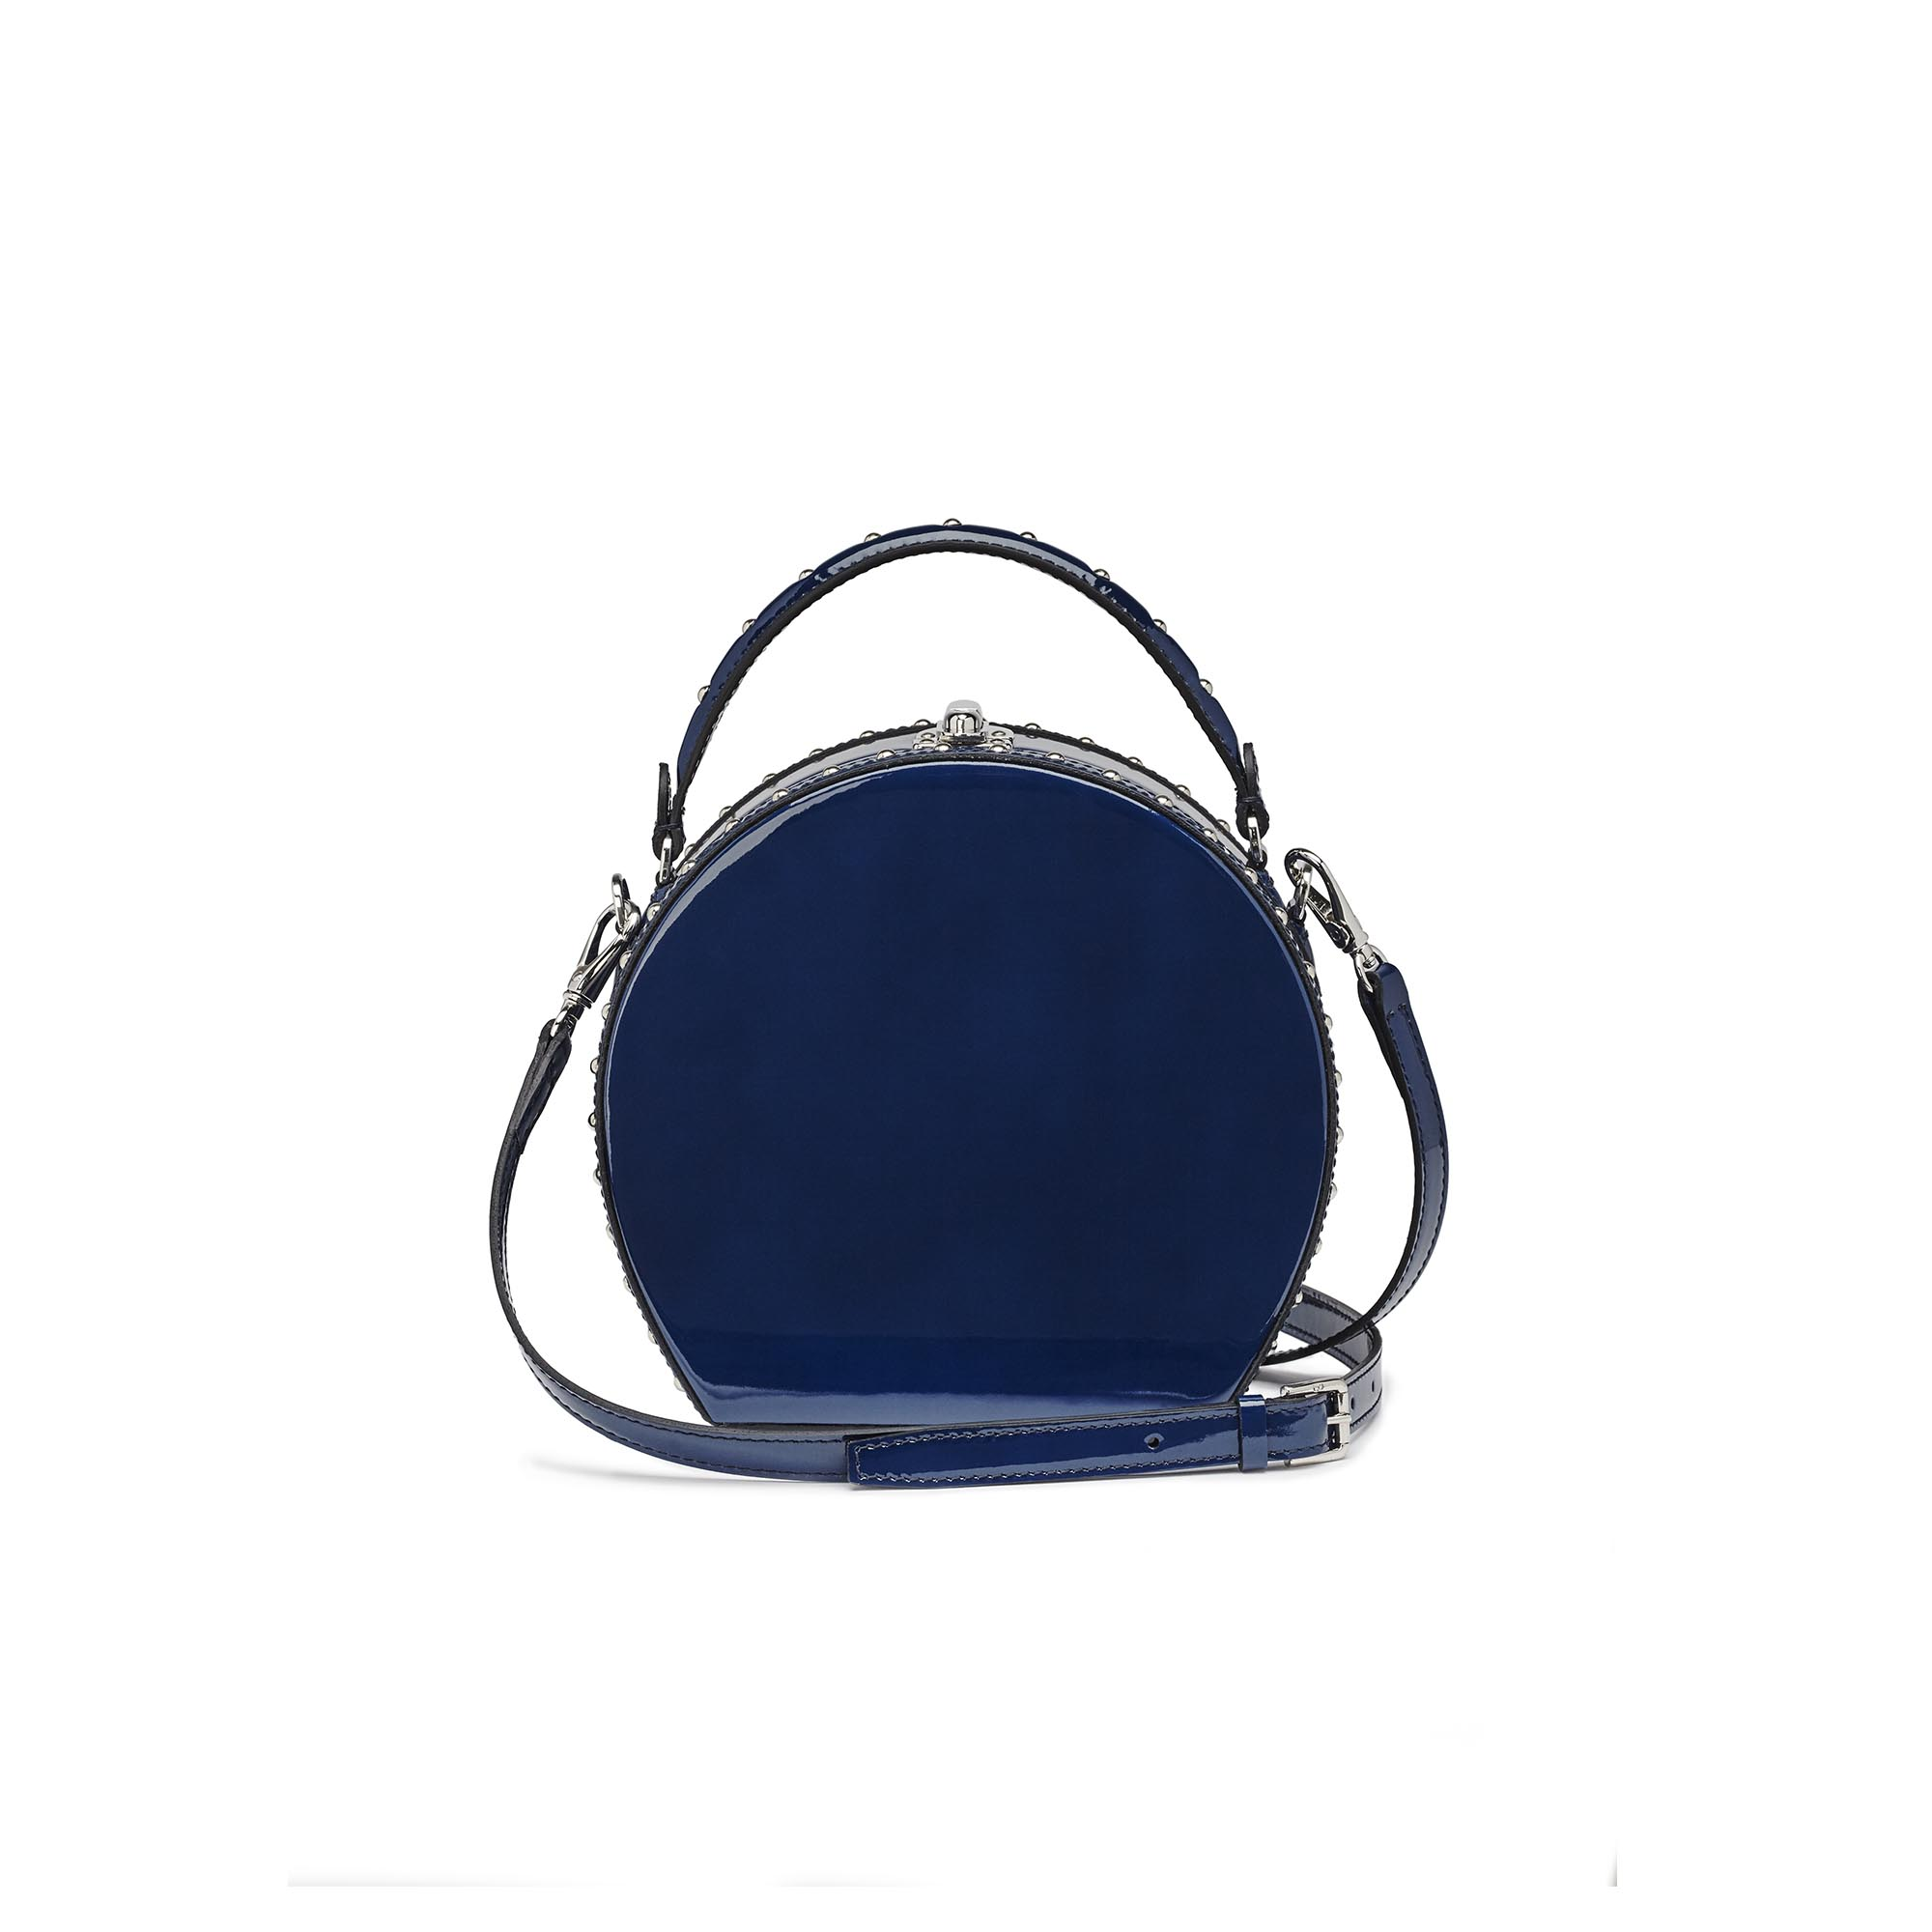 Regular-Bertoncina-dark-blue-patent-leather-bag-Bertoni-1949_01